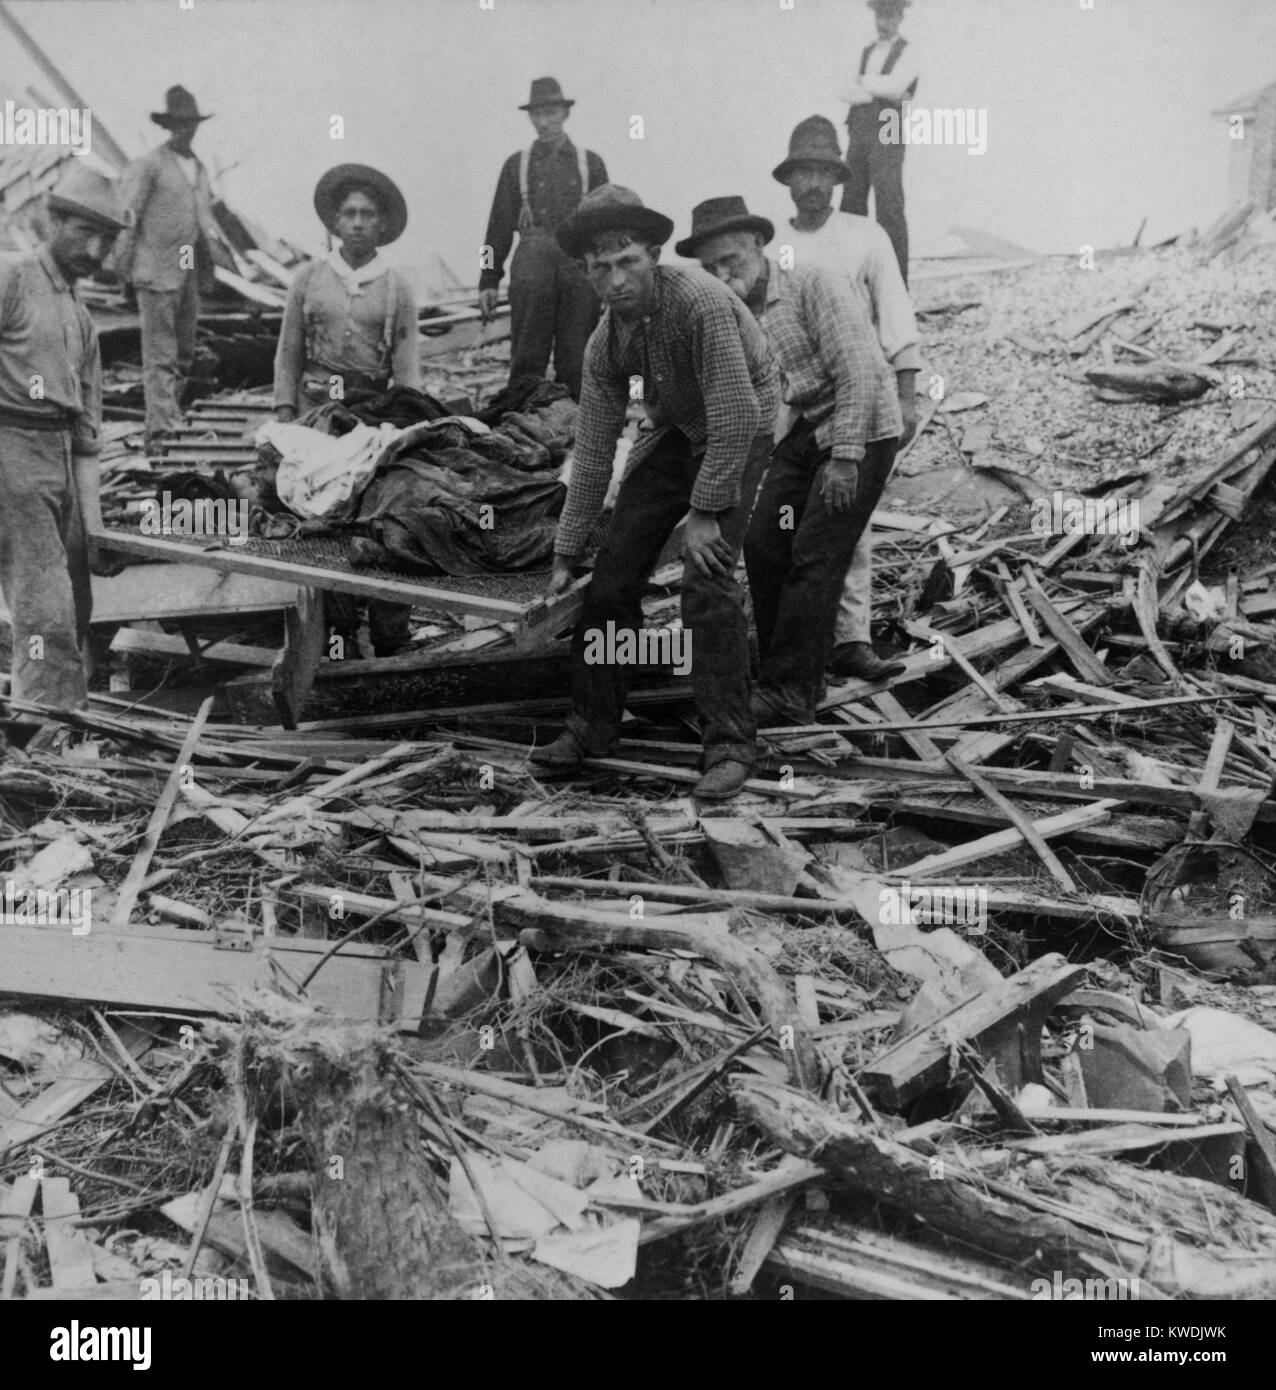 Men carrying bodies on stretcher, surrounded by wreckage of the hurricane in Galveston, Texas, Sept. 1900. The disaster Stock Photo